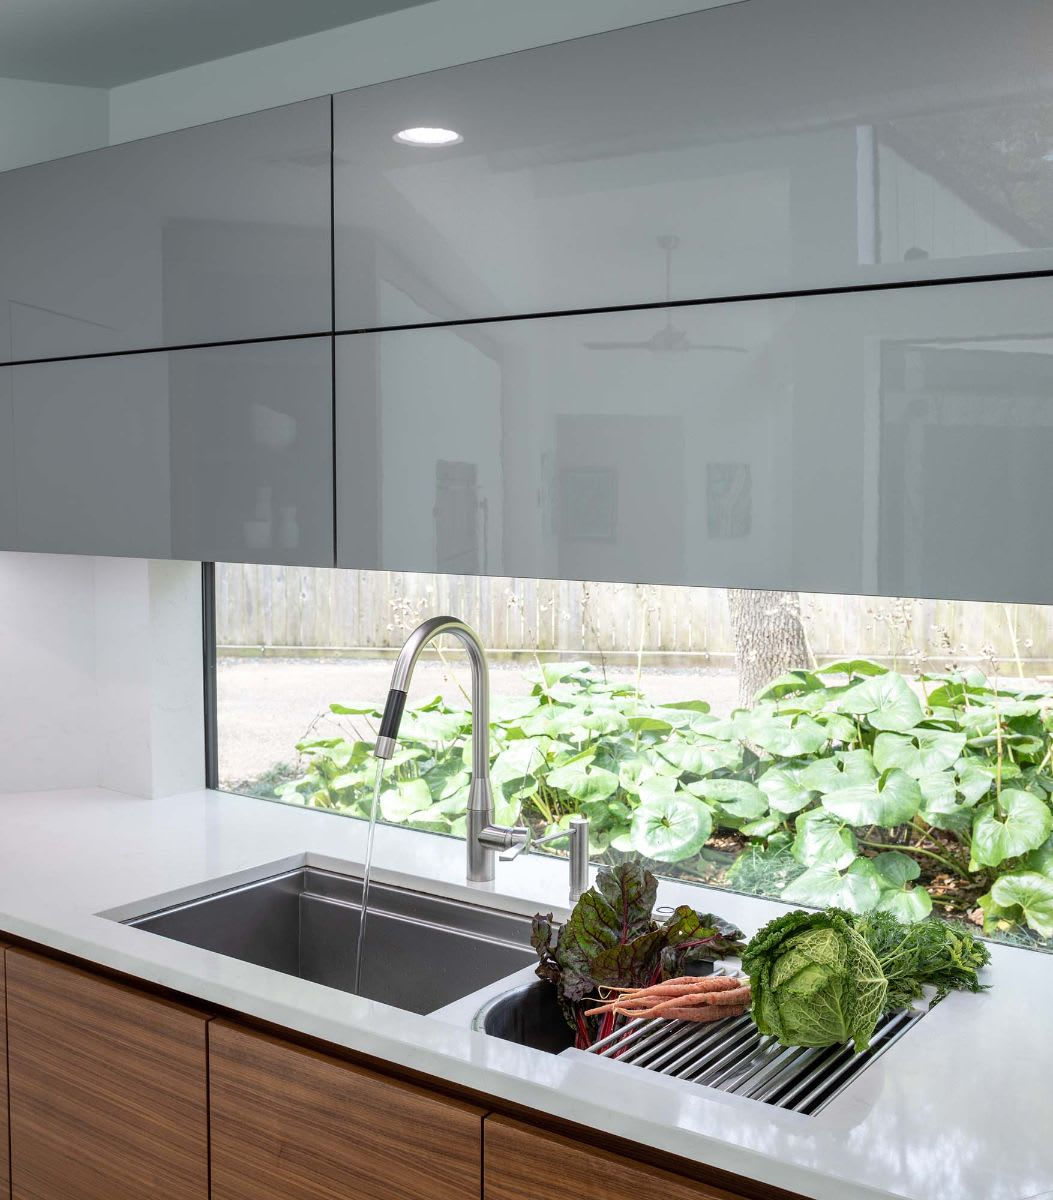 the galley sink display